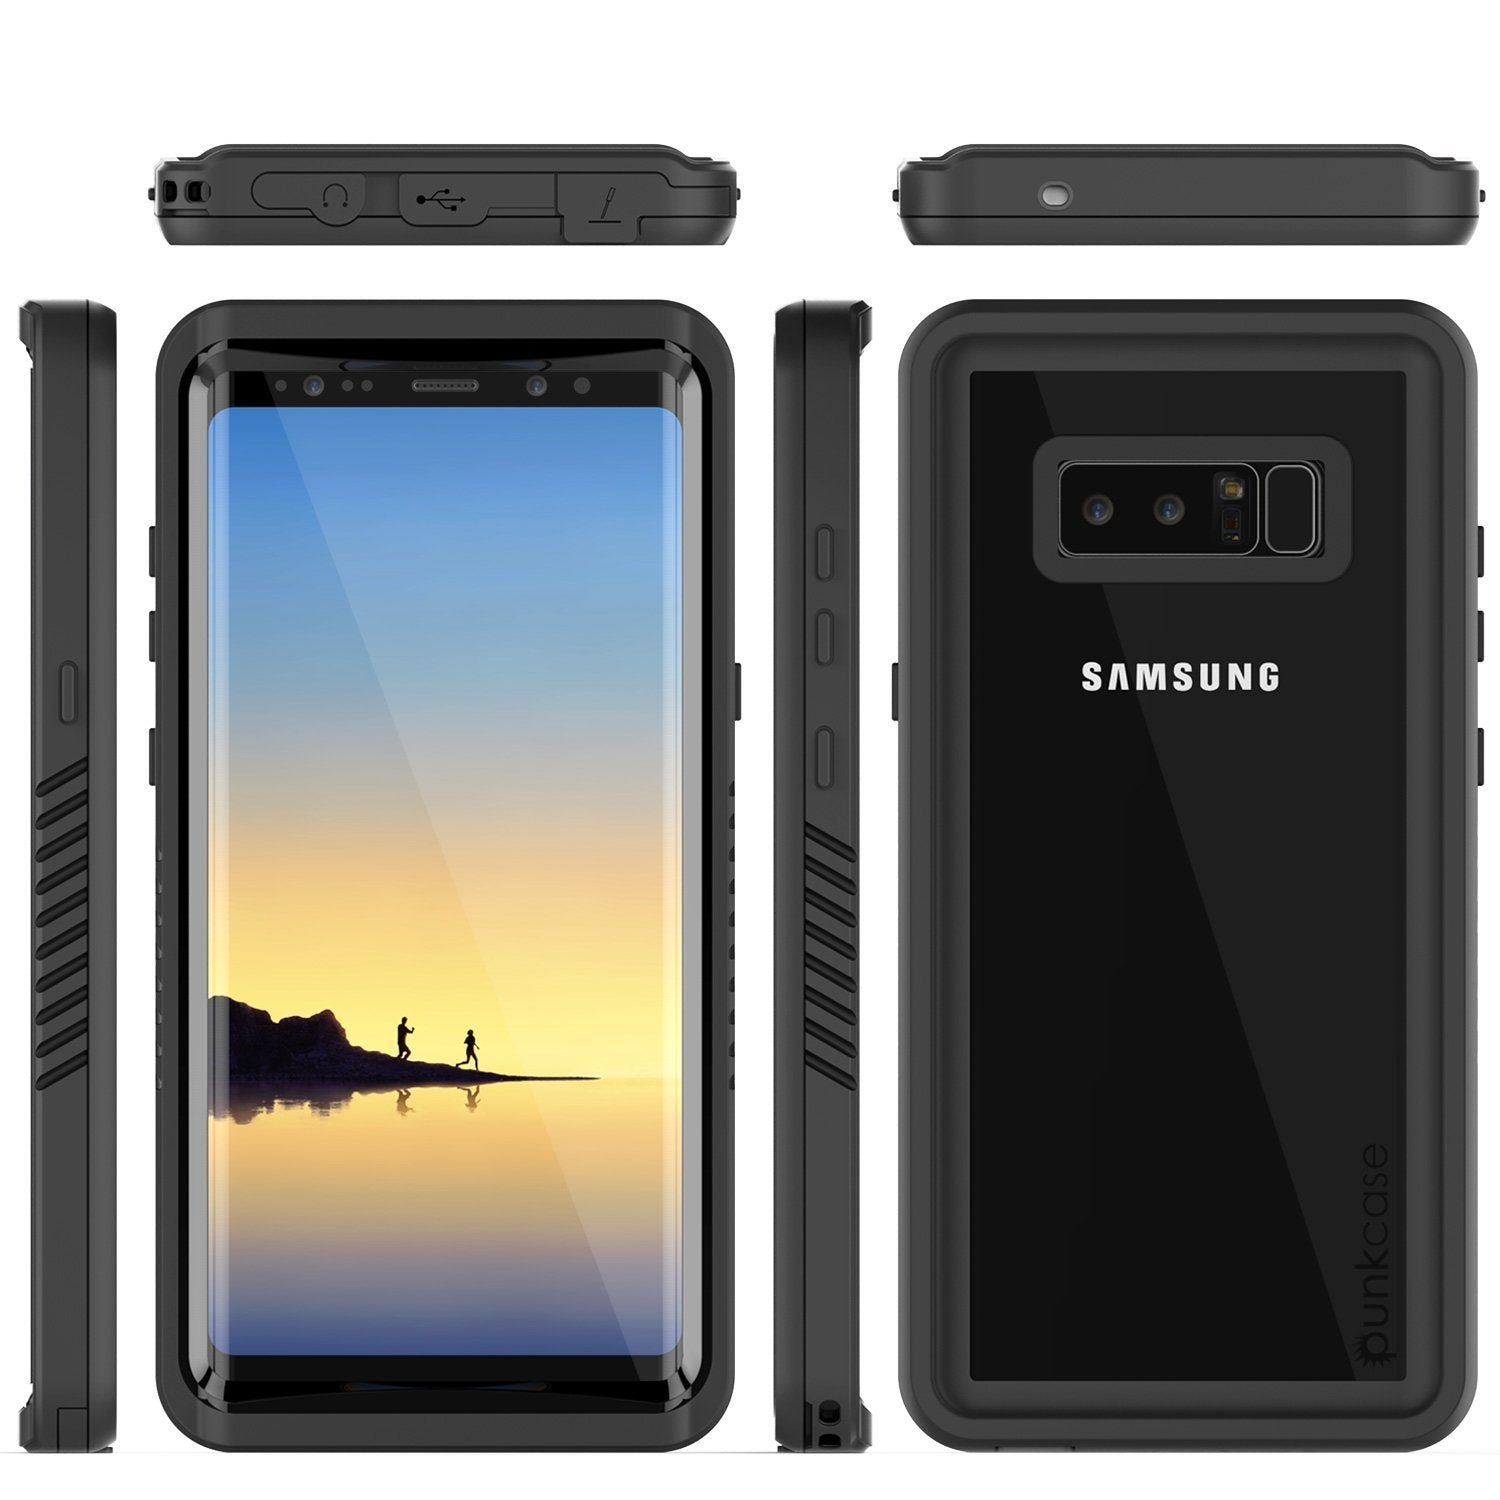 Galaxy Note 8 Case, Punkcase [Extreme Series] [Slim Fit] [IP68 Certified] [Shockproof] Armor Cover W/ Built In Screen Protector [Clear]